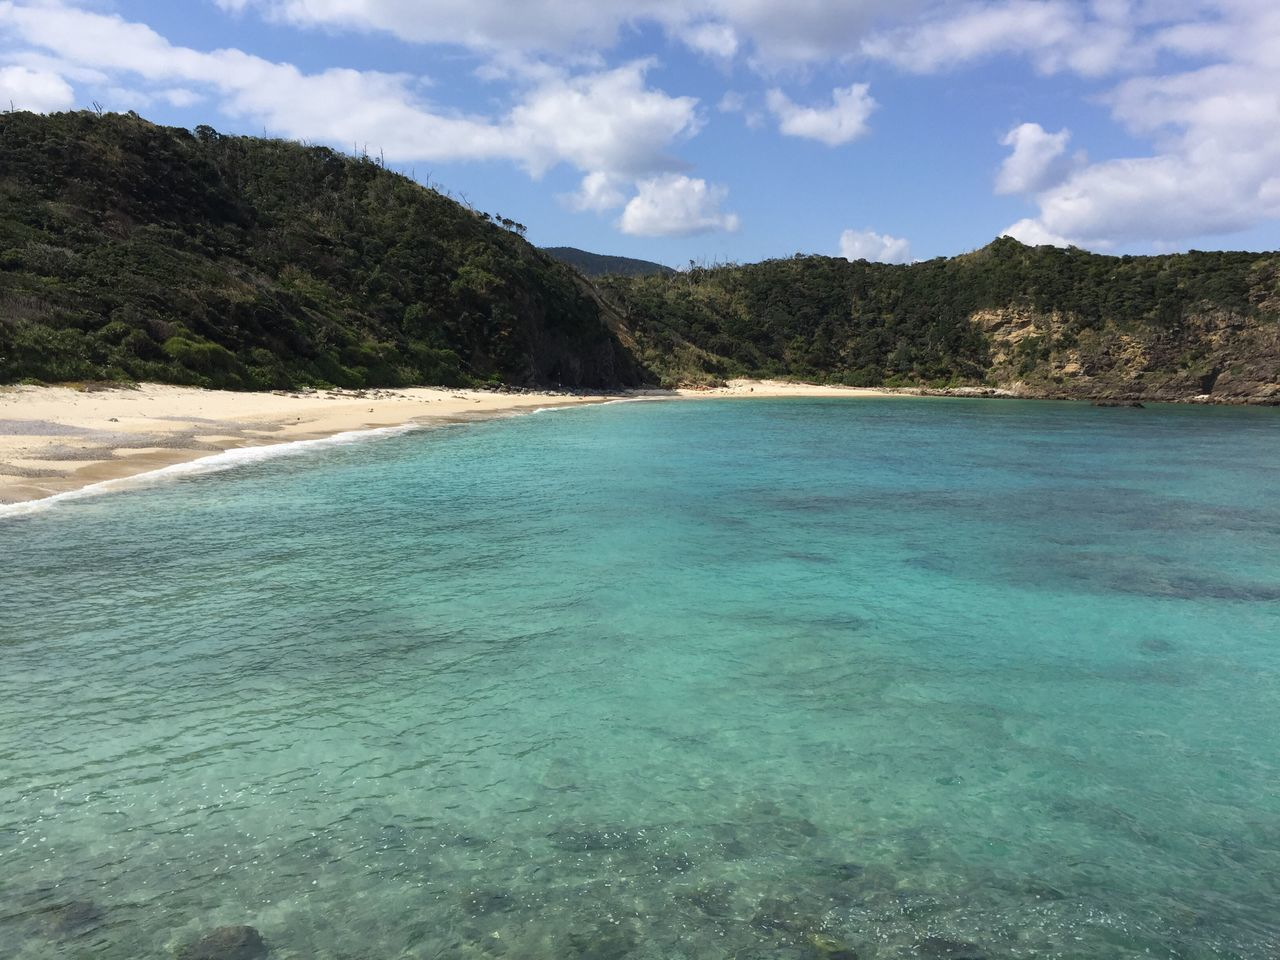 Sea Beach Nature Sky Scenics Water Beauty In Nature Sand Outdoors Idyllic Day Tree No People Tranquility Cloud - Sky Turquoise Winter Sea Amami Island